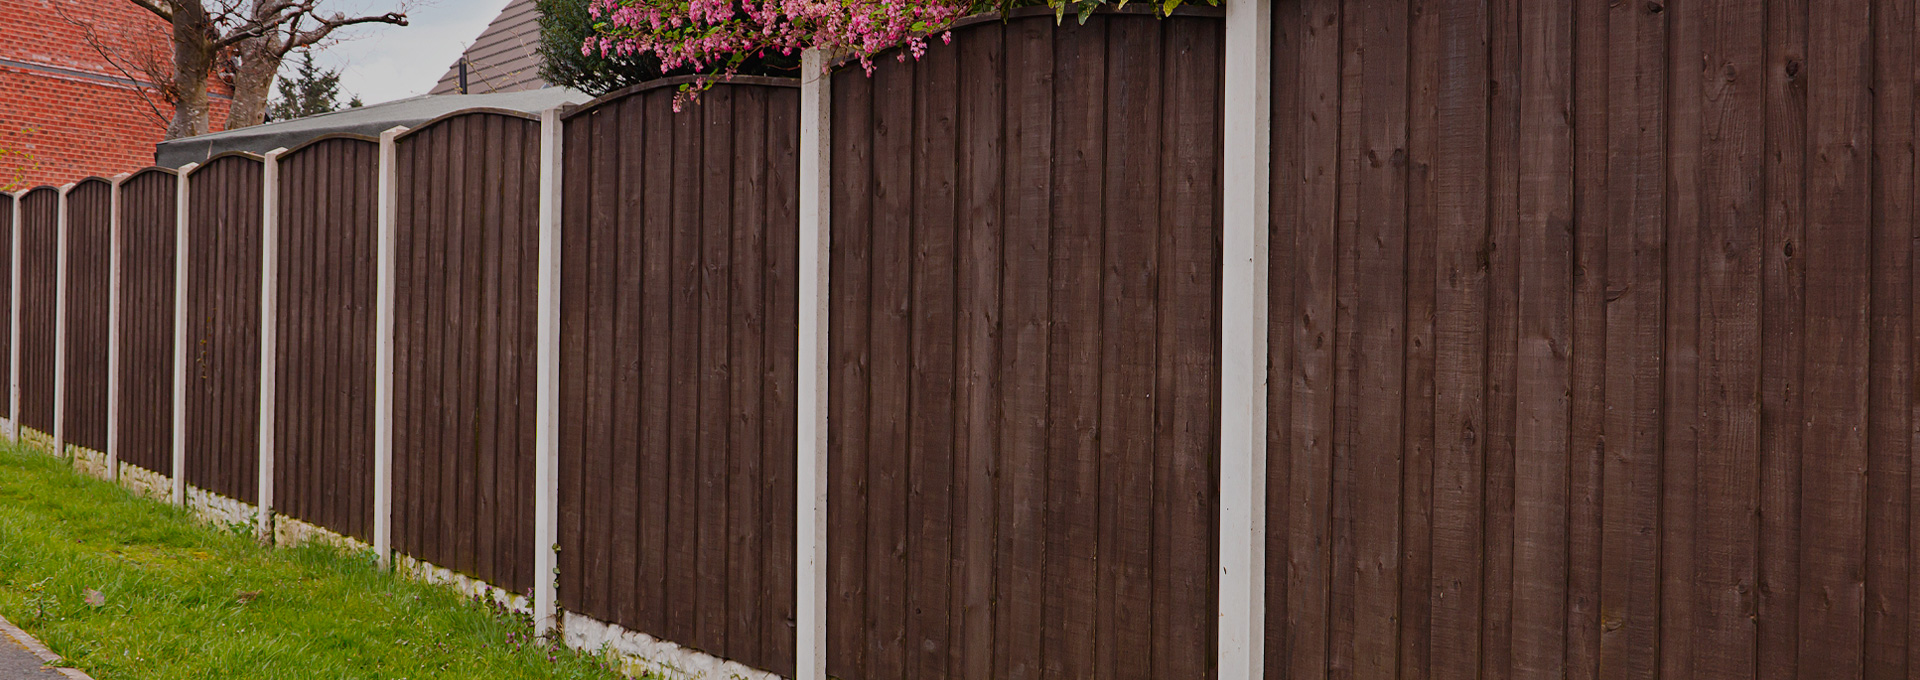 Simple domestic fencing project finished by Outback Landscapes specialists.